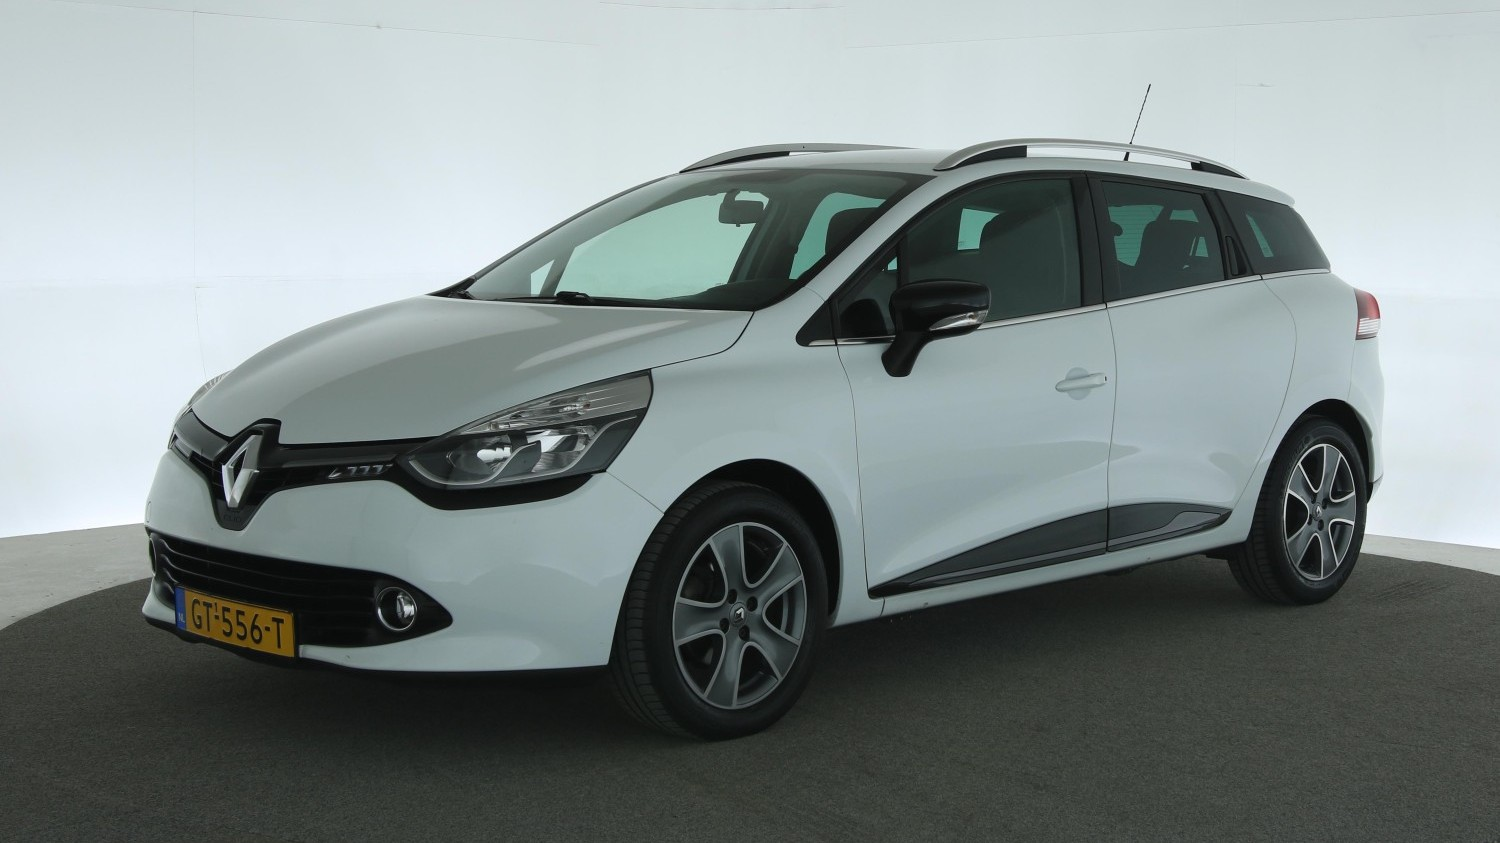 Renault Clio Station 2015 GT-556-T 1